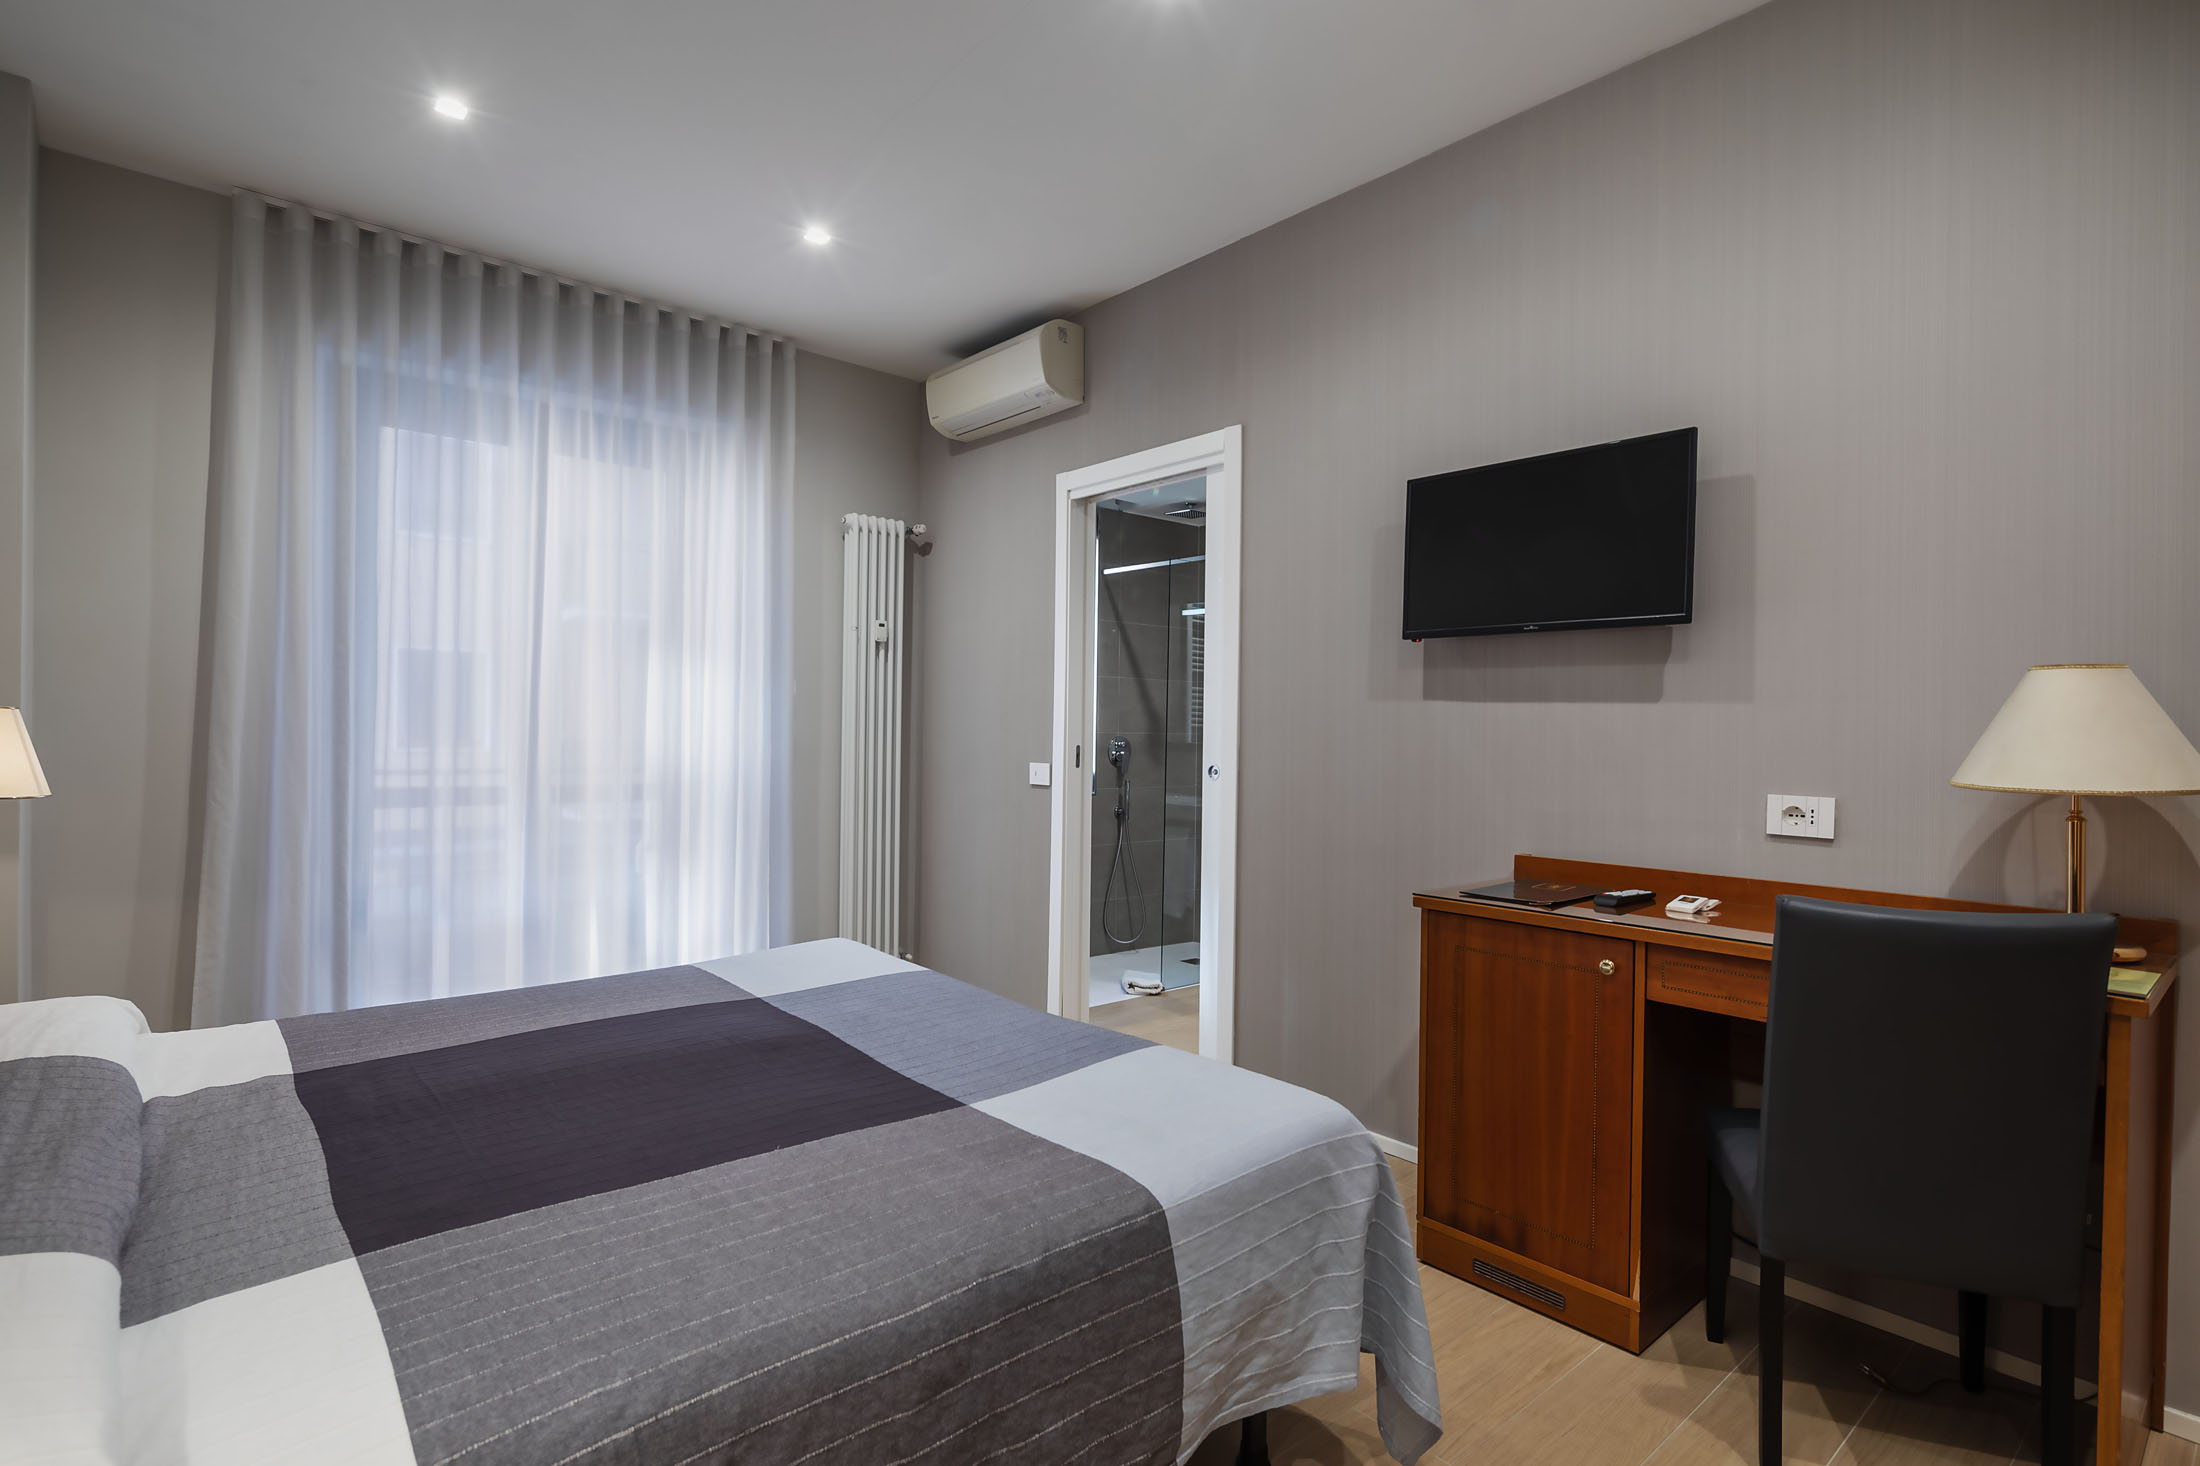 https://www.in-lombardia.it/sites/default/files/accomodation/gallery/105682/37629/excelsior_pavia_18.jpg